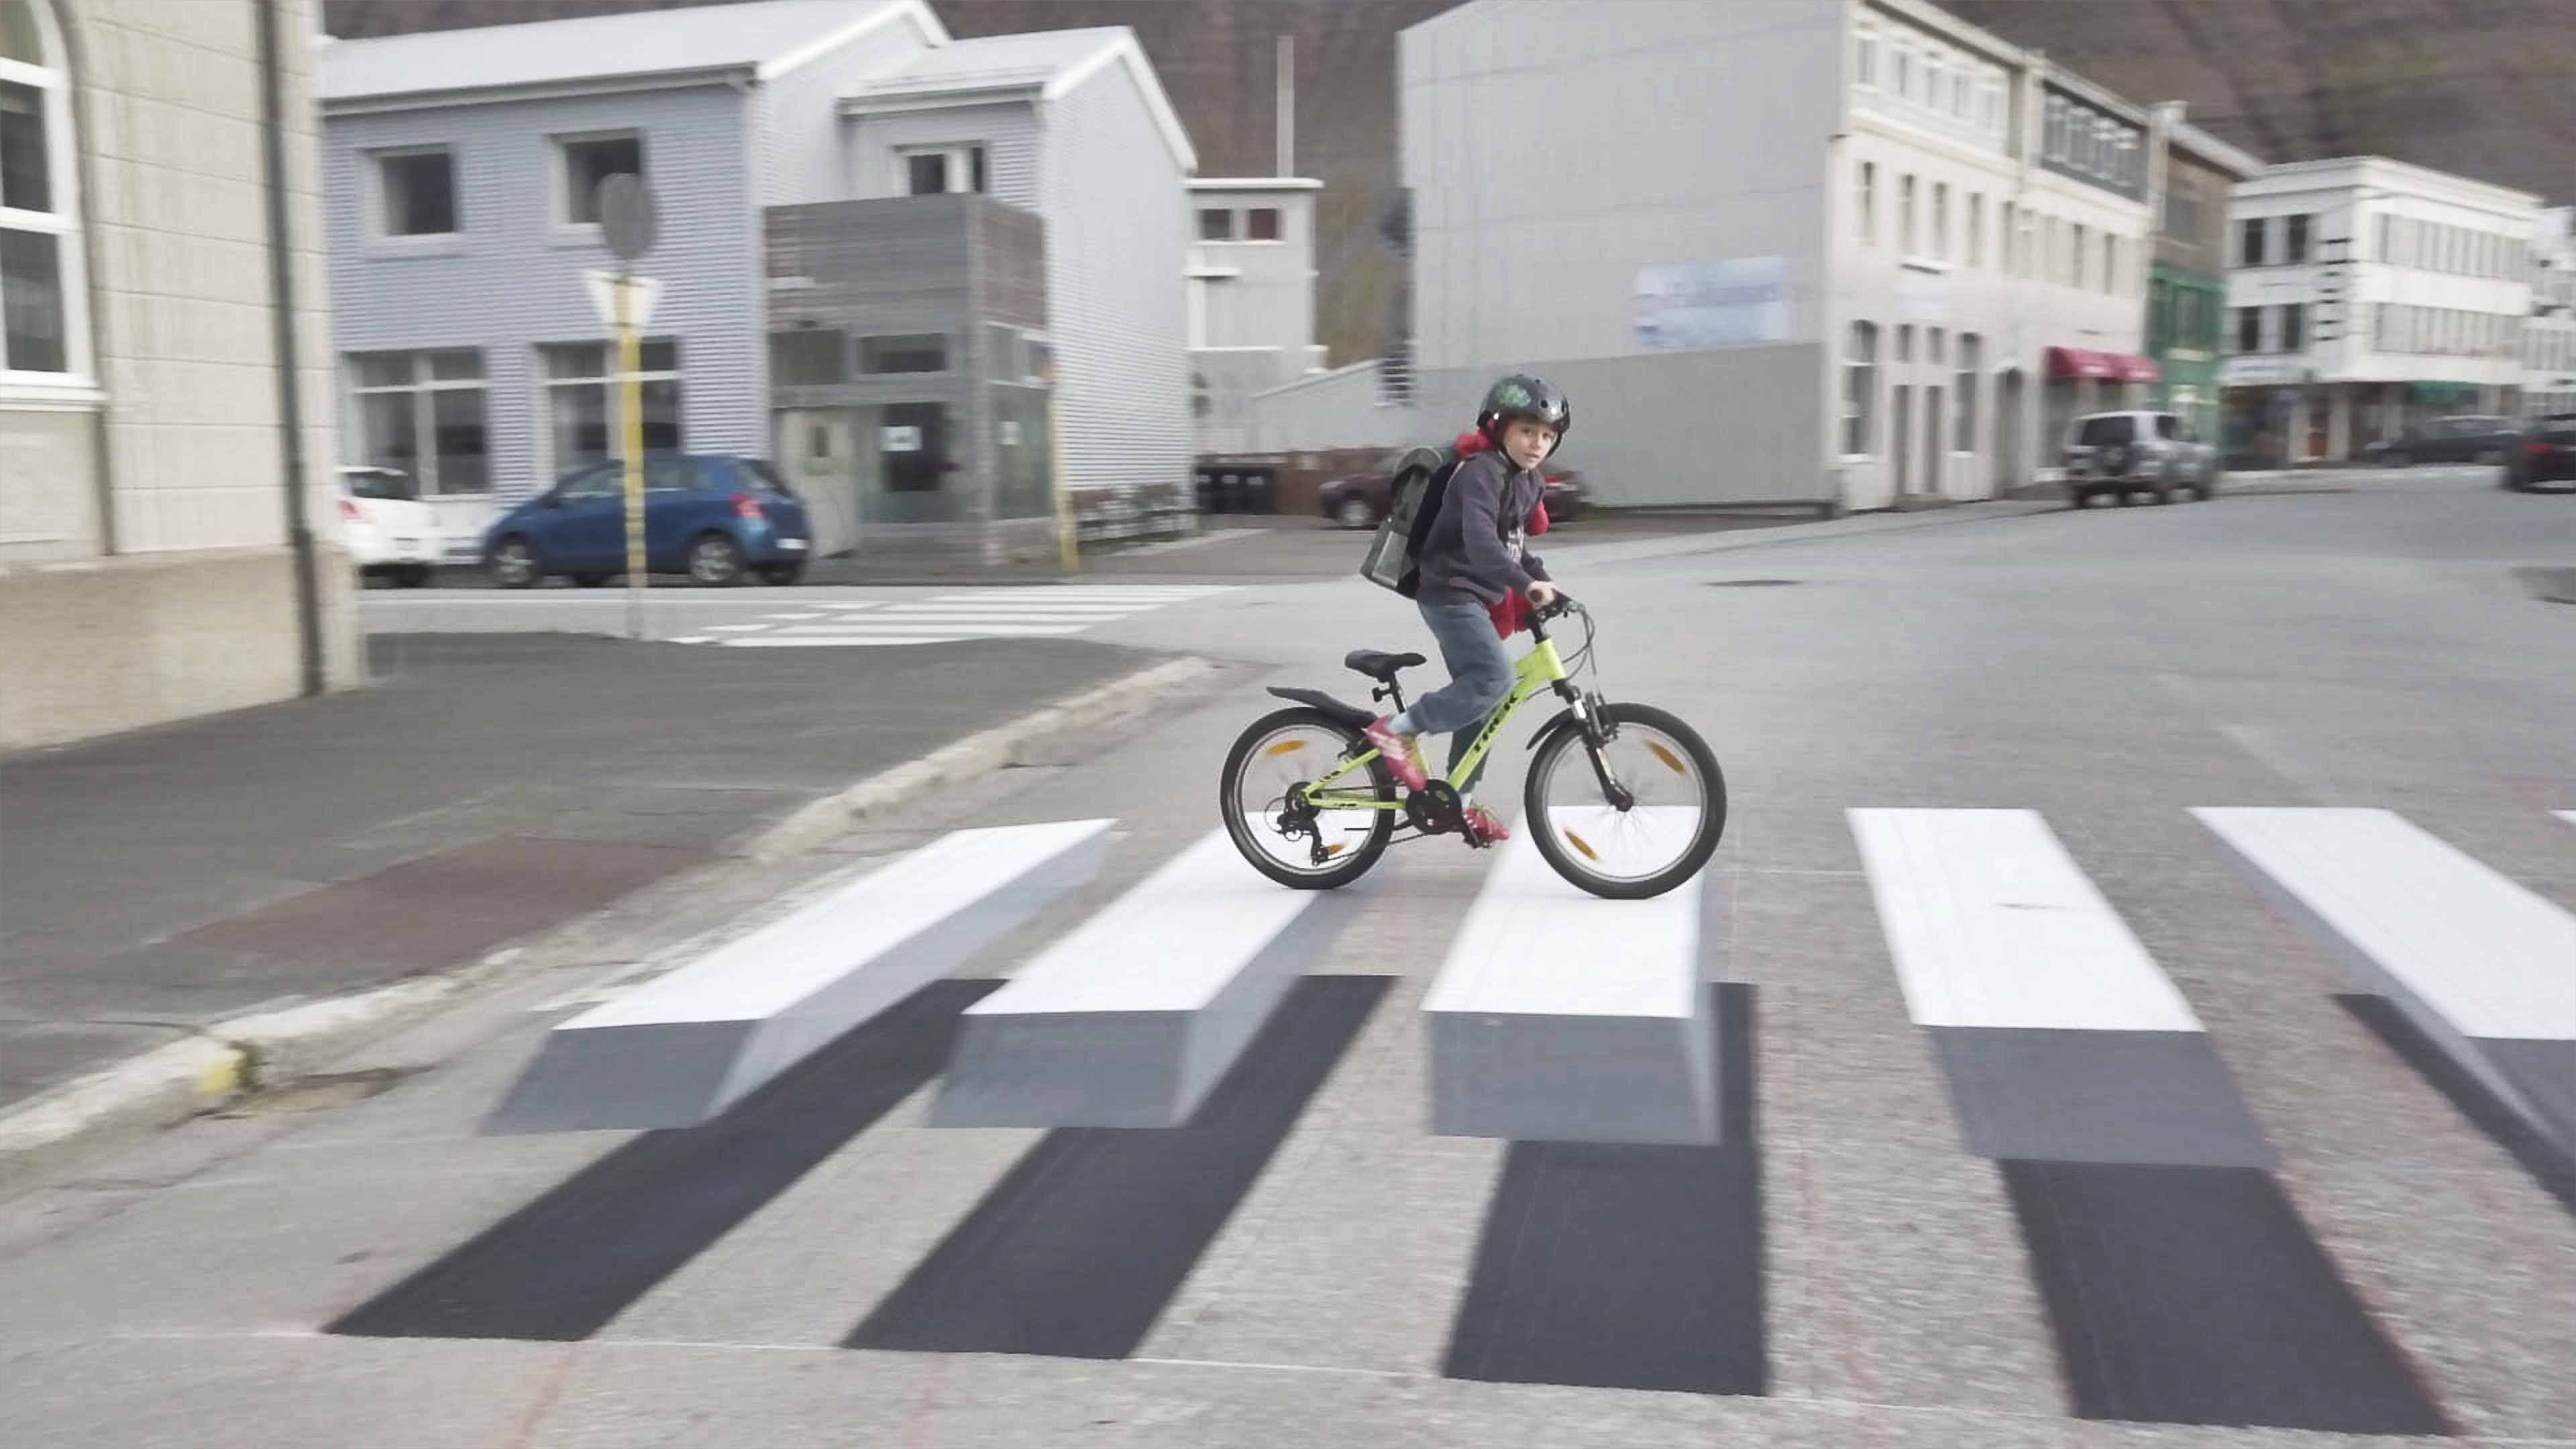 3D zebra crossing